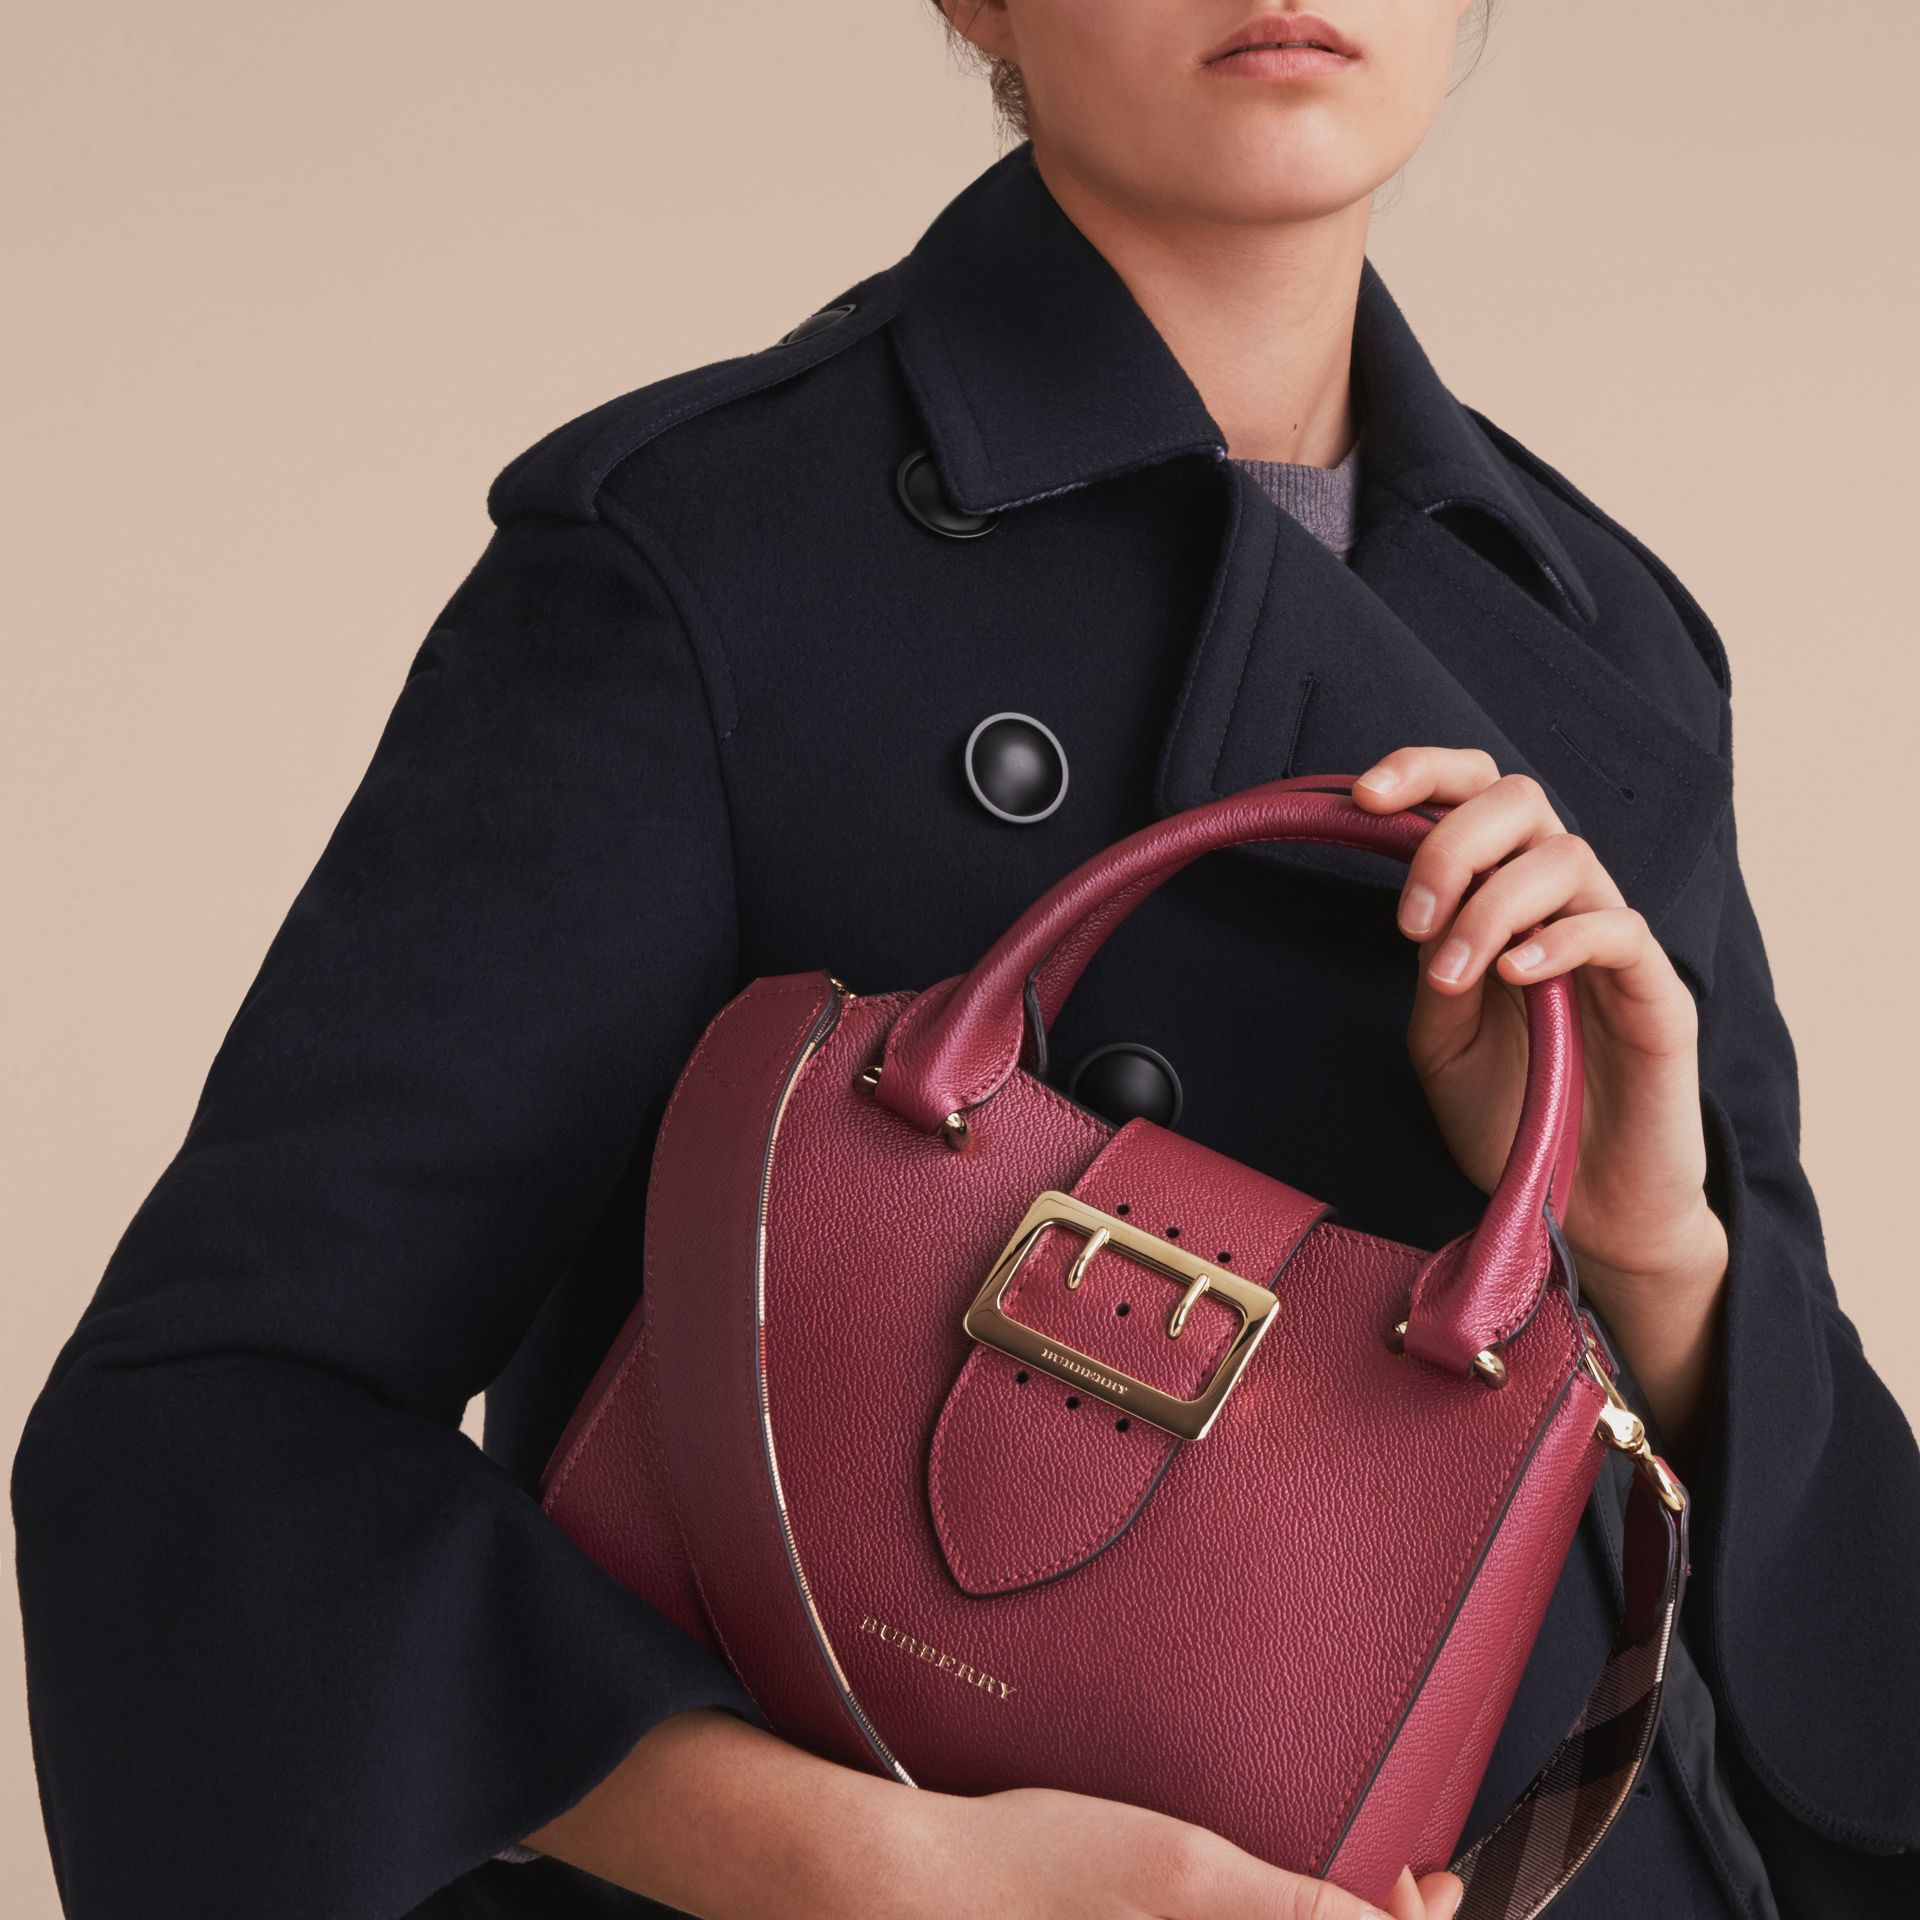 Borsa tote The Buckle piccola in pelle a grana (Prugna Scuro) - Donna | Burberry - immagine della galleria 3